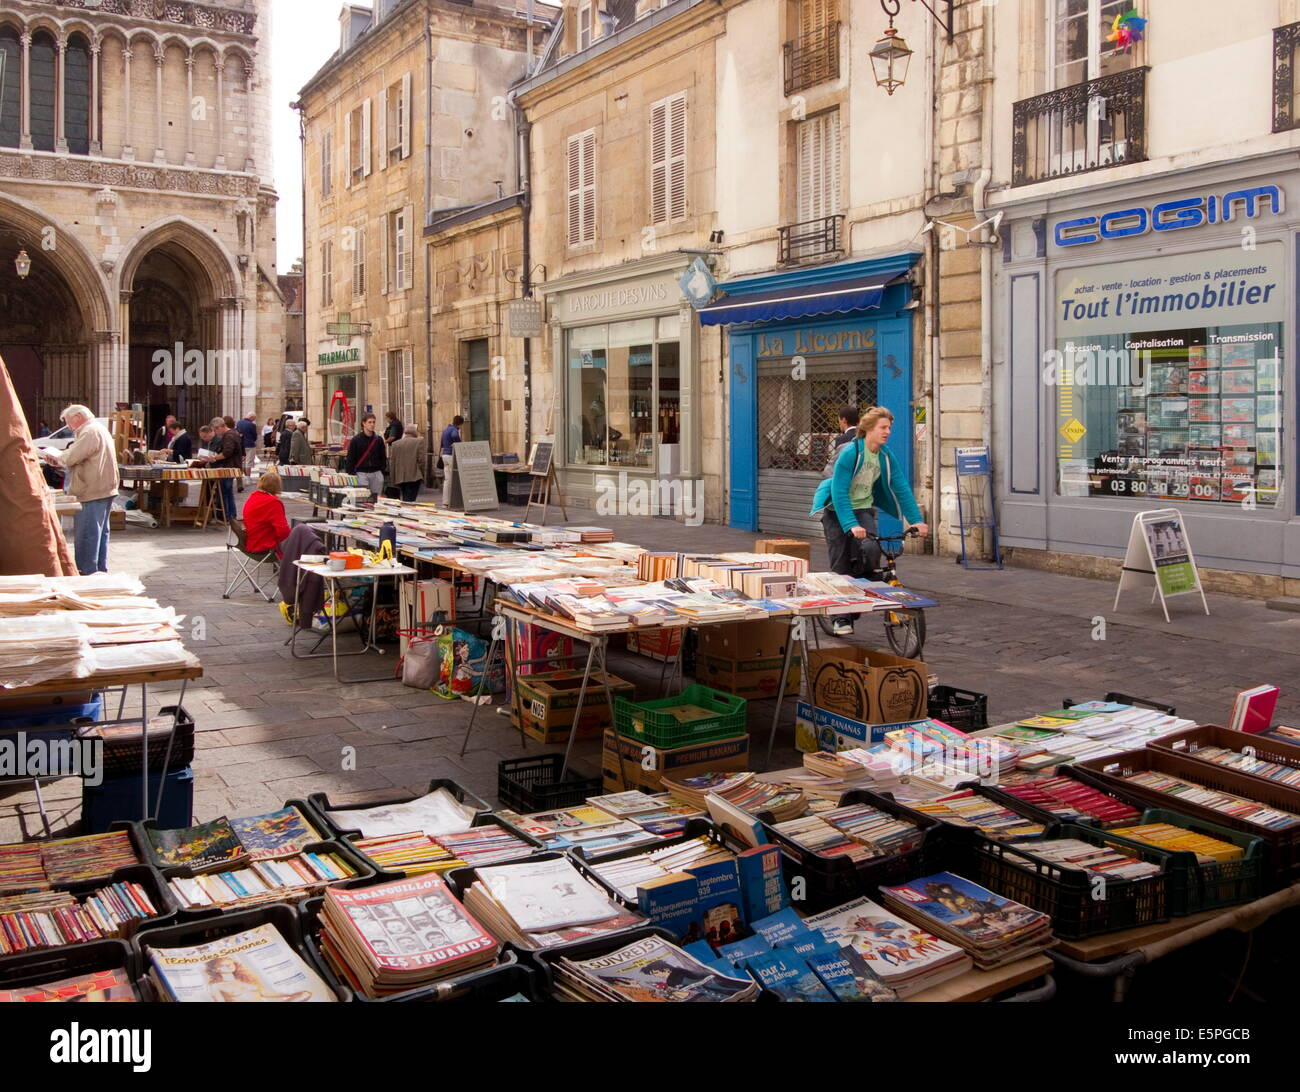 Booksellers' market stalls on Rue Musette and Church of Notre Dame, Dijon, Burgundy, France, Europe Stock Photo